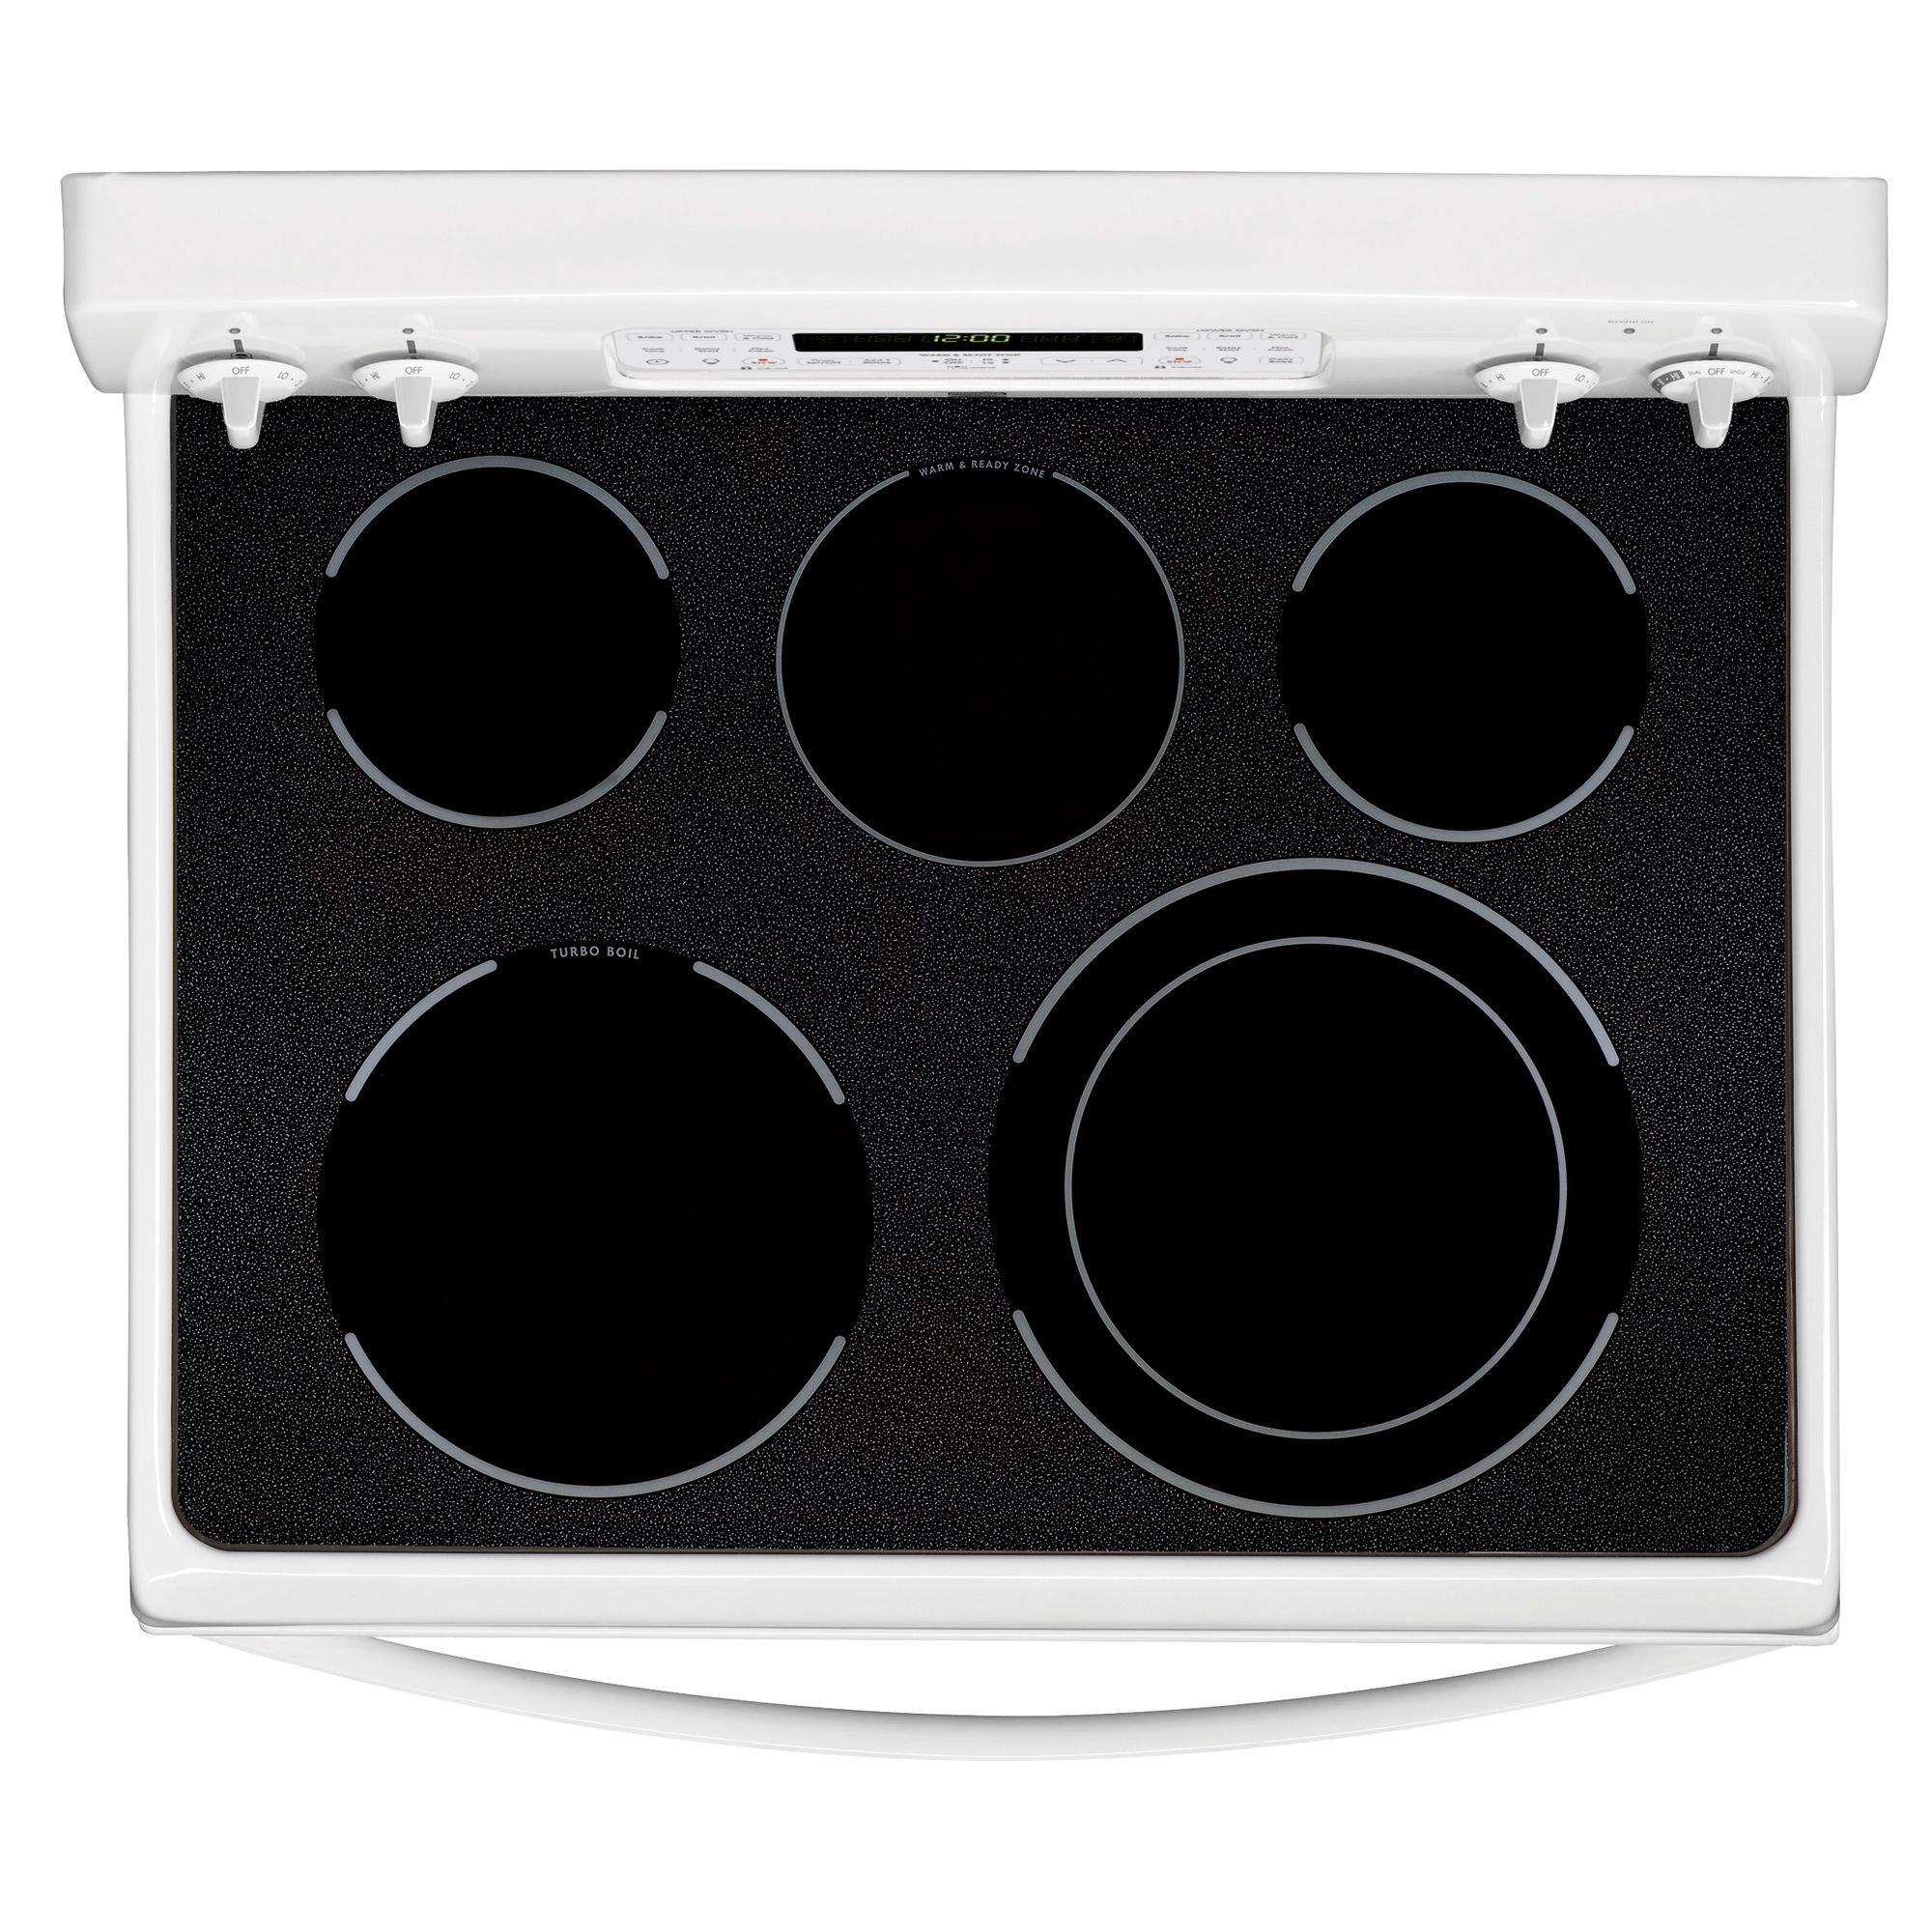 Kenmore 6.64 cu. ft. Double-Oven Electric Range w/ Convection - White